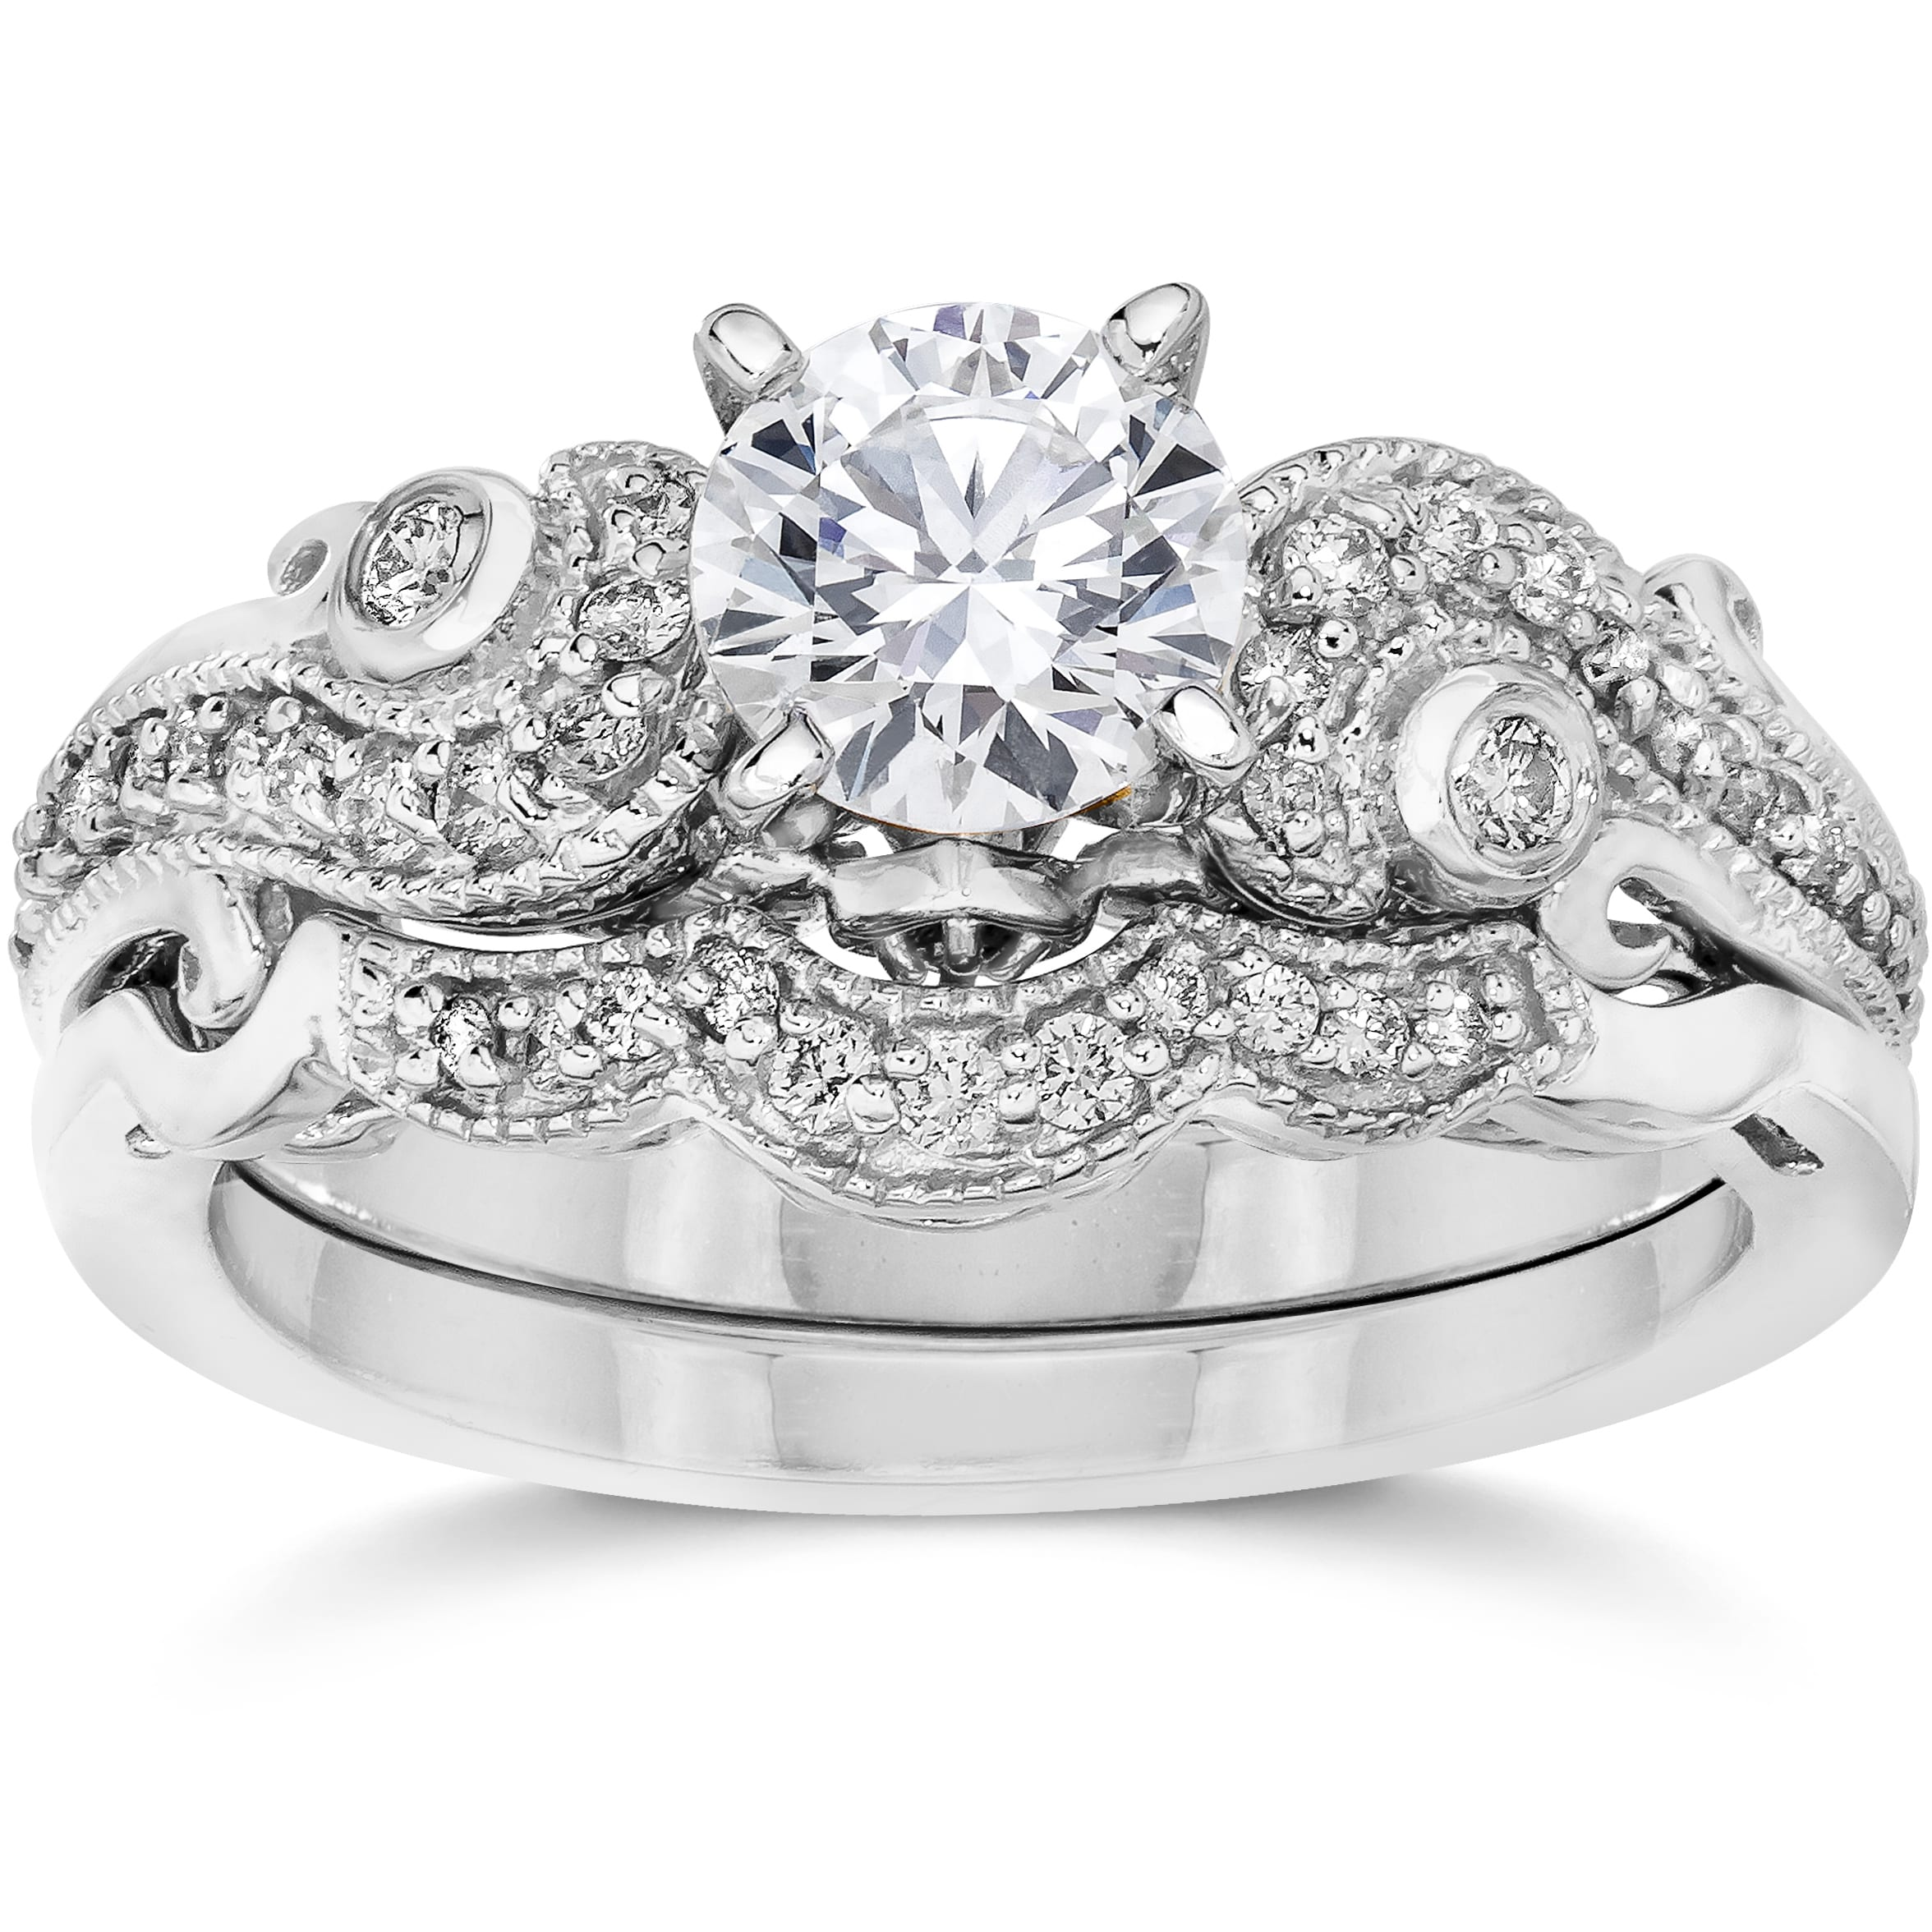 miraculous incredible infinity exceptional jewelers galleria bands cambridgeside engagement wedding diamond sets single ring and band white wonder a complicated jewelry stir quaint favors tiffany banded gold key kindle